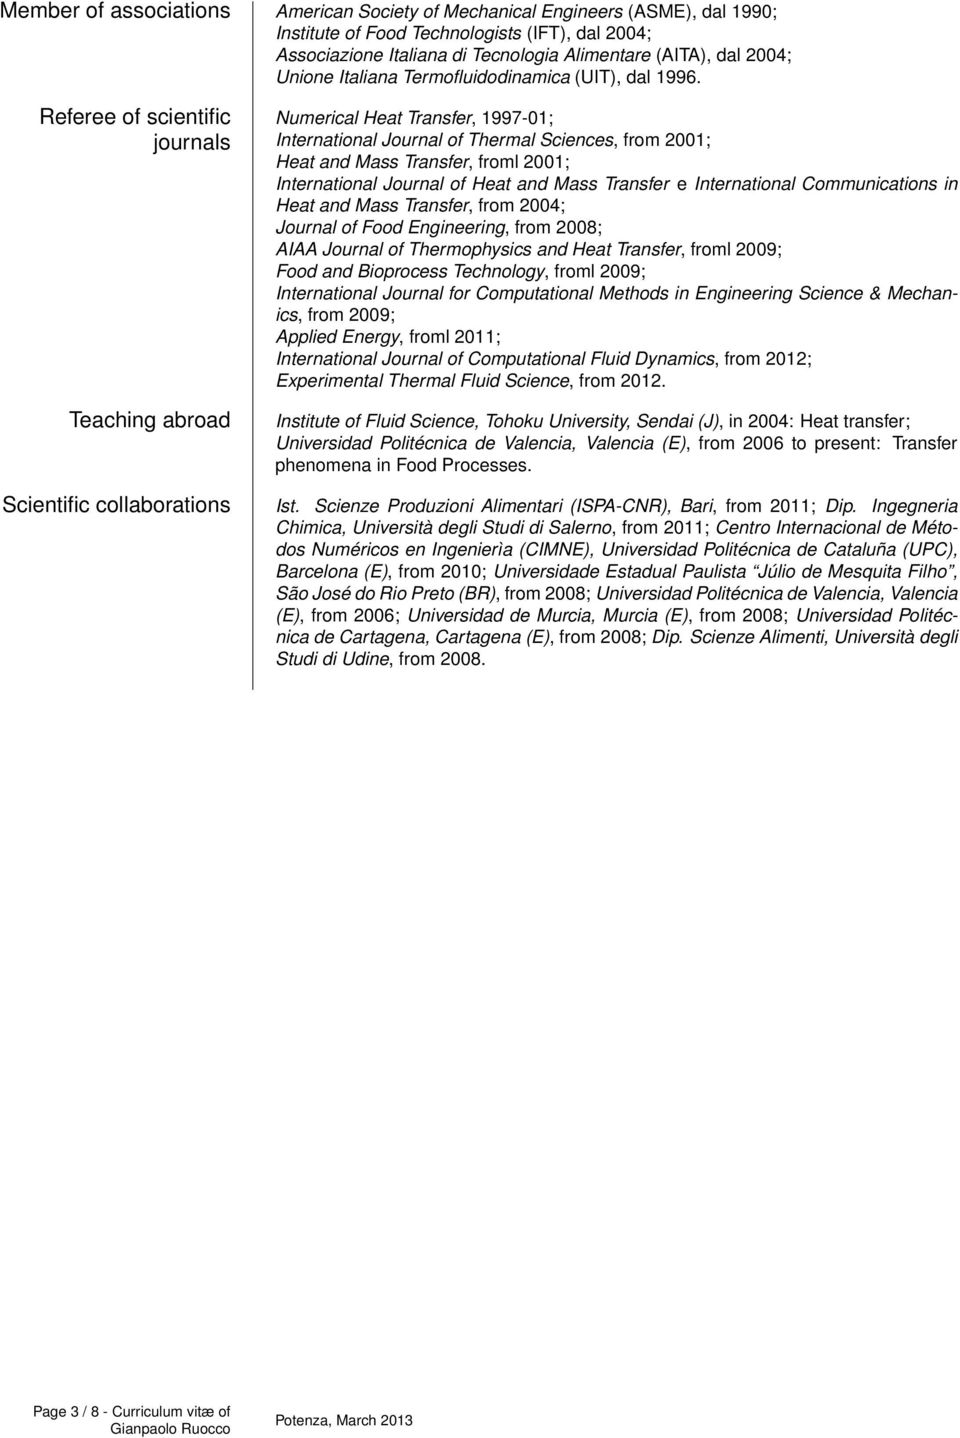 Referee of scientific journals Teaching abroad Numerical Heat Transfer, 1997-01; International Journal of Thermal Sciences, from 2001; Heat and Mass Transfer, froml 2001; International Journal of